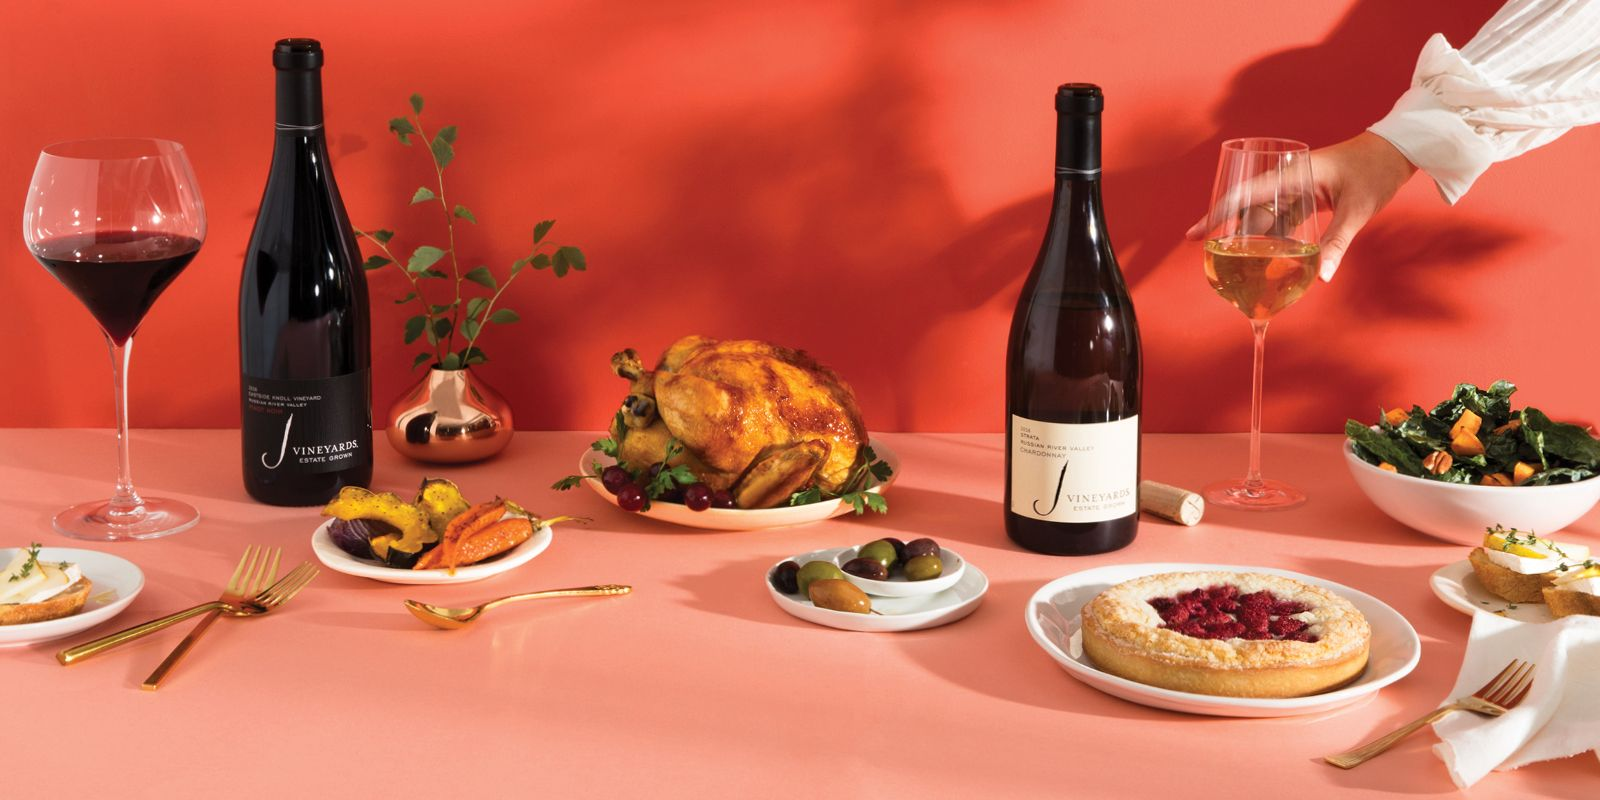 Fall S Color Trends Red White 2016 Strata Chardonnay 2016 Eastside Knoll Pinot Noir Perfect For Pairing With Autumn F Fall Color Trend Wines Red And White